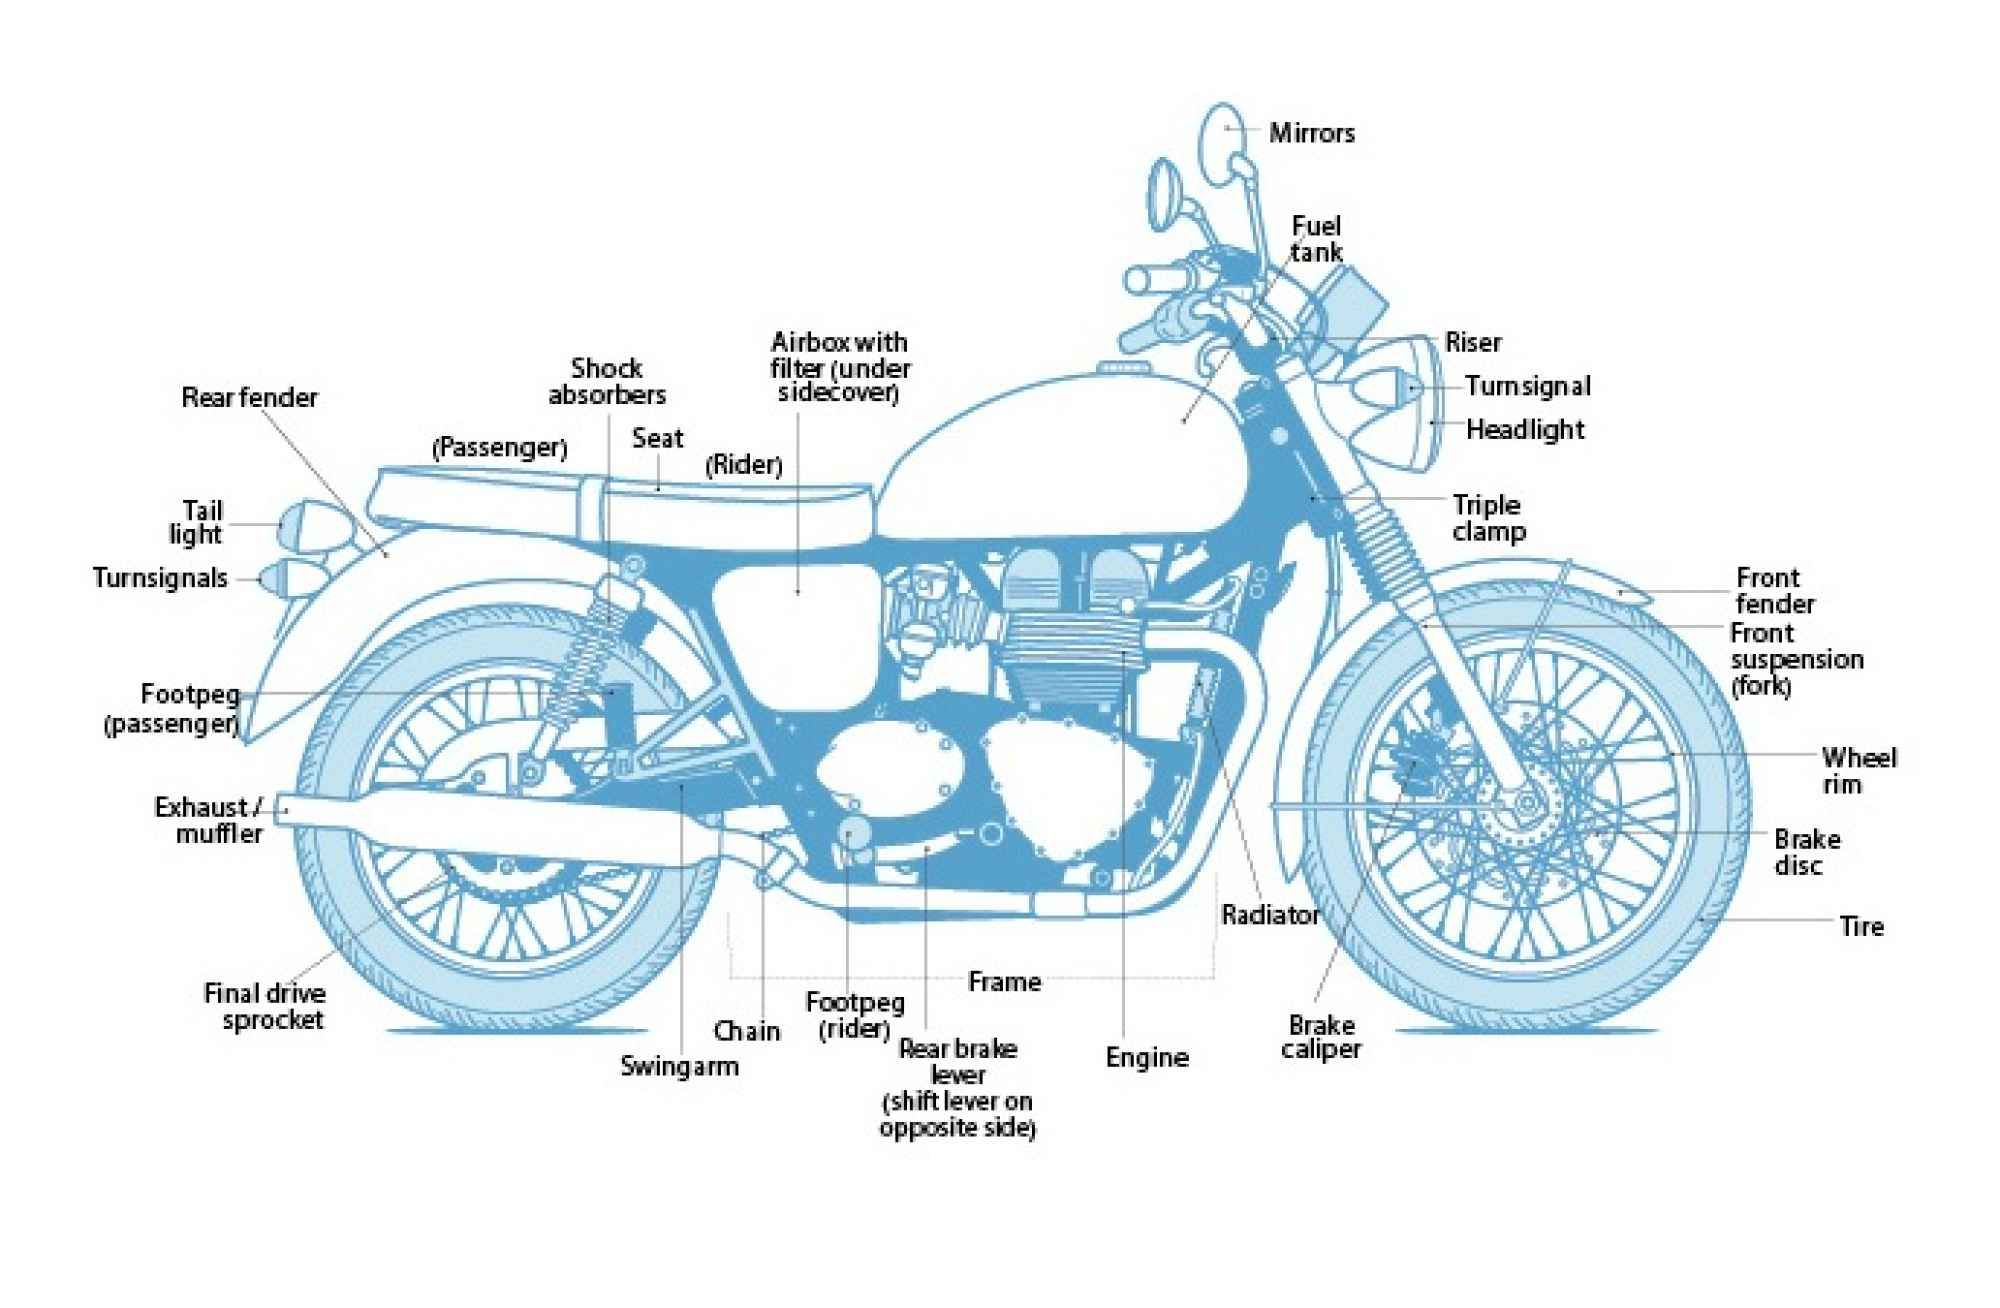 hight resolution of motorcycle diagram motorcycles motorcycle cafe racer bikes harley davidson motorcycle parts diagram